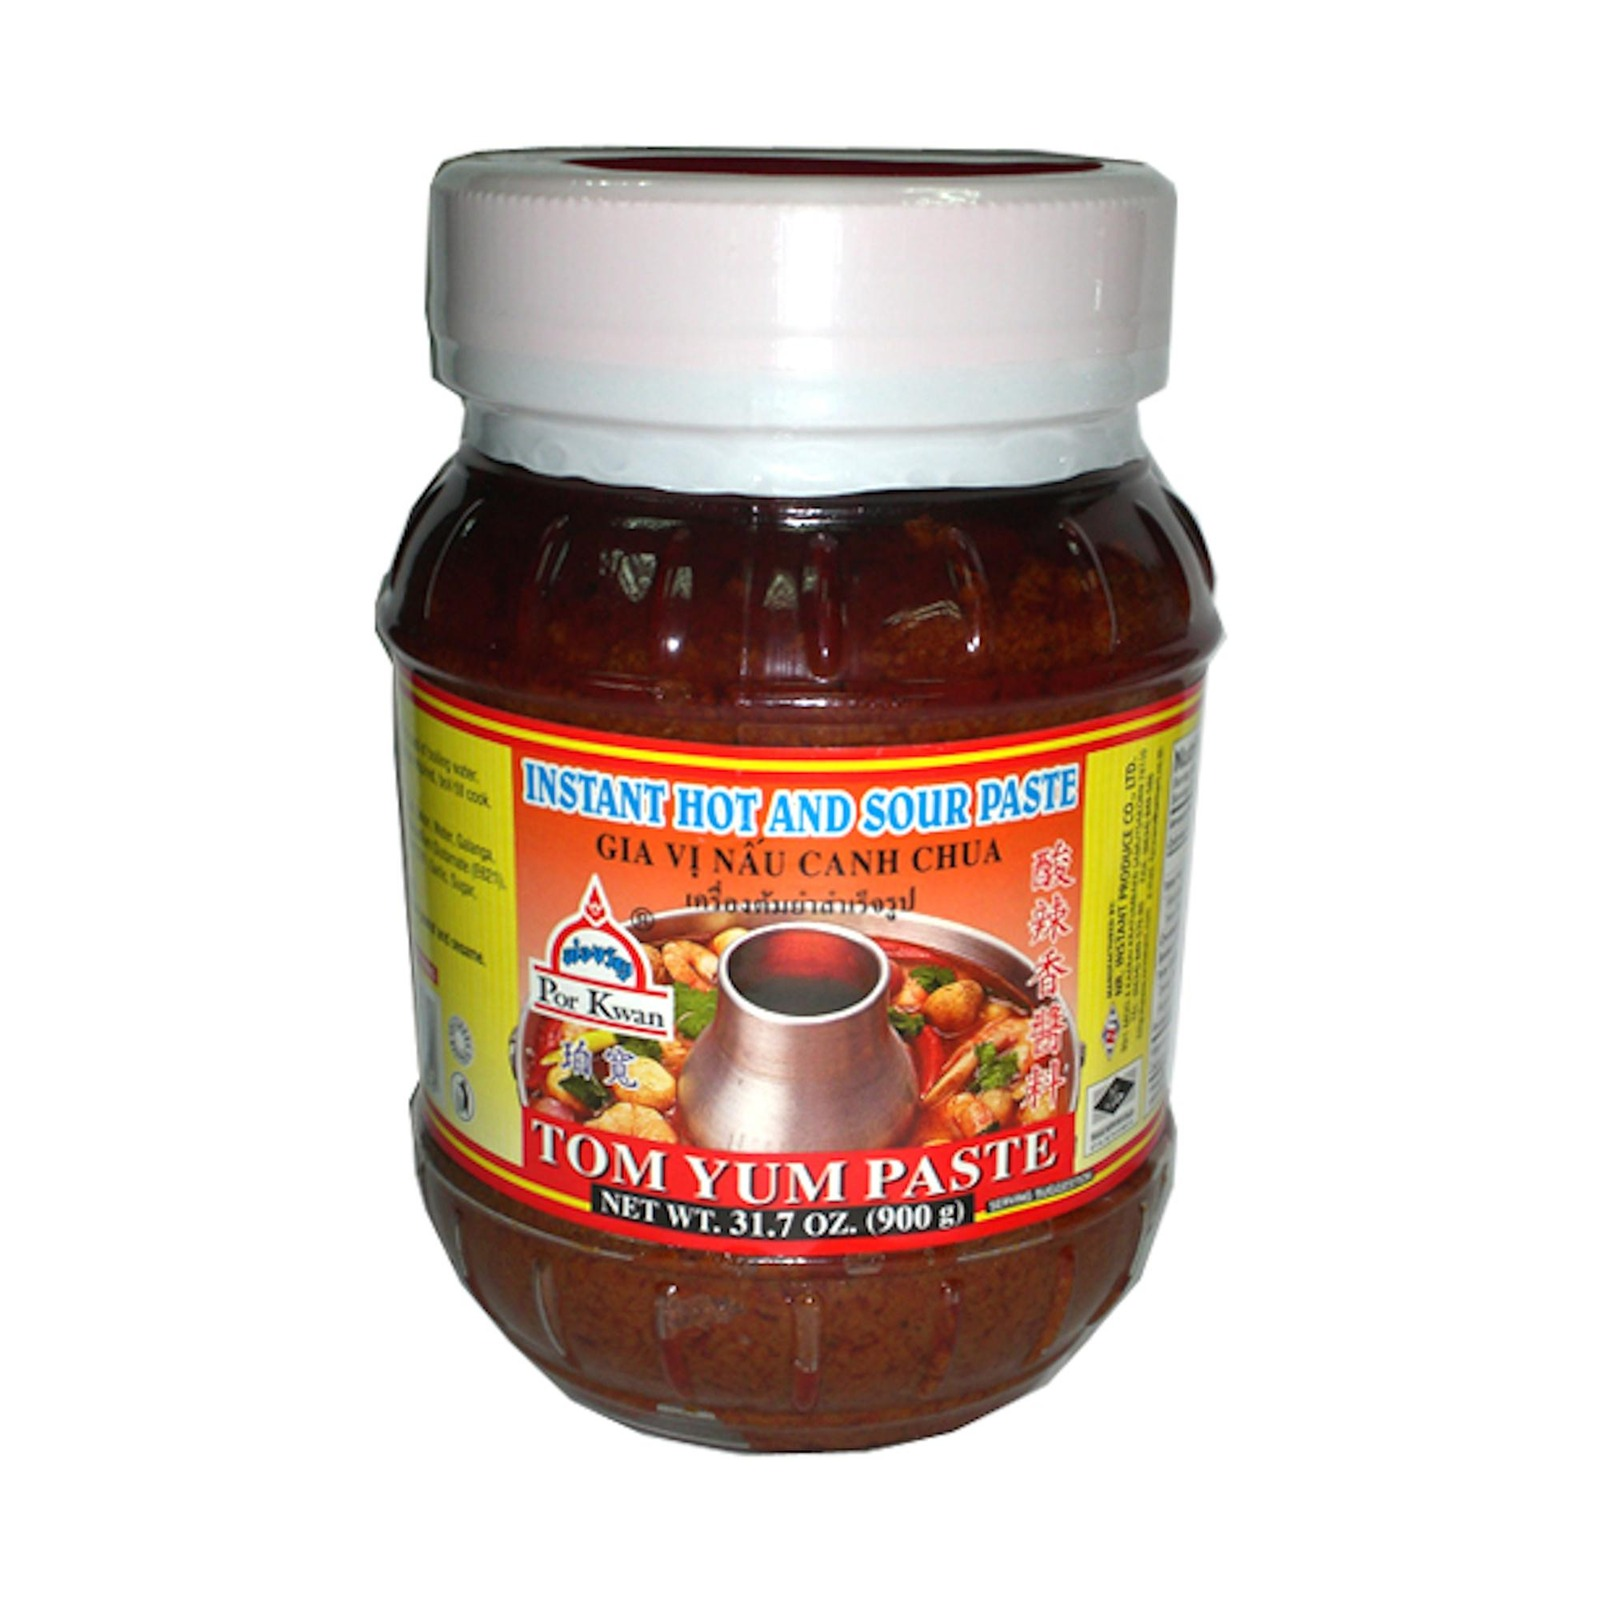 POR KWAN TOM YUM PASTE